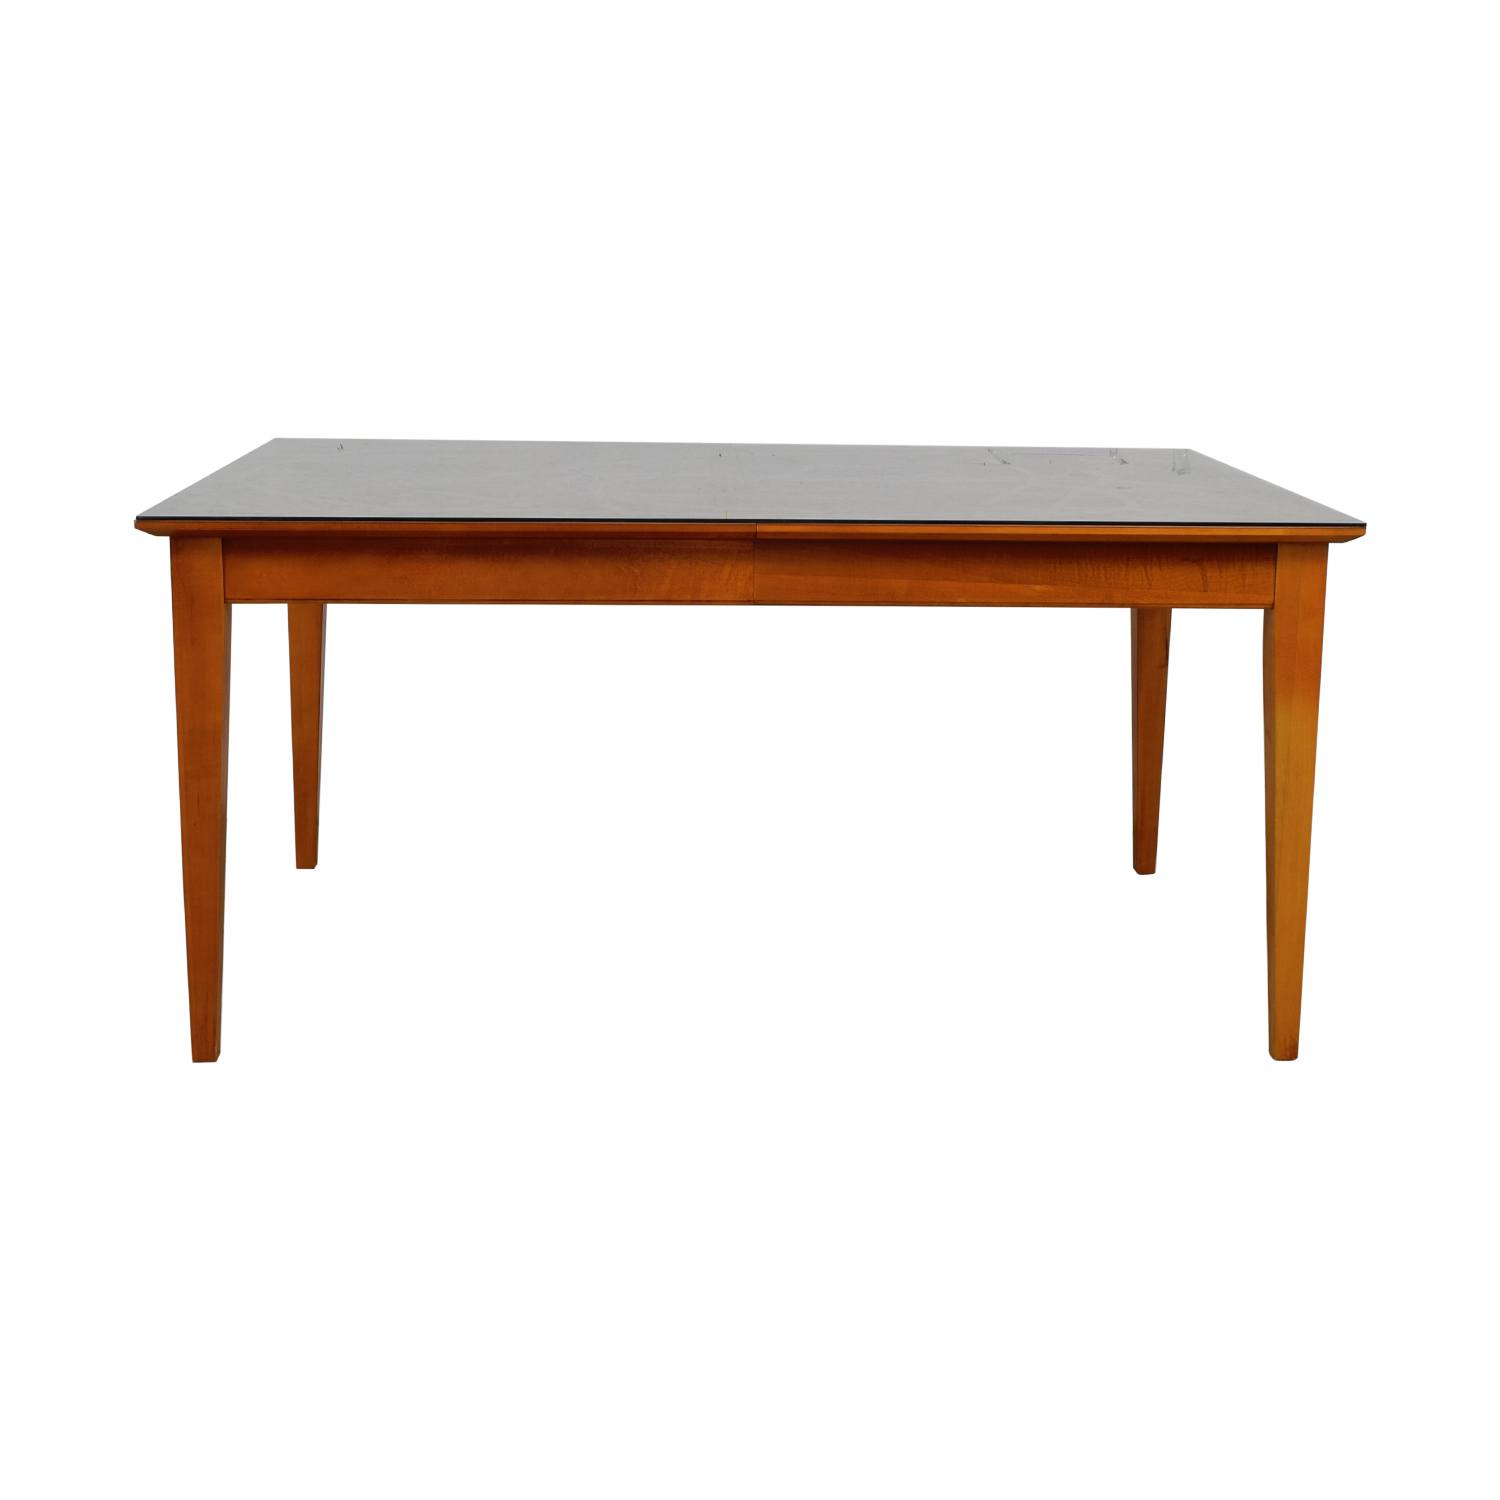 buy Thomasville Thomasville Extendable Wood Dining Table online